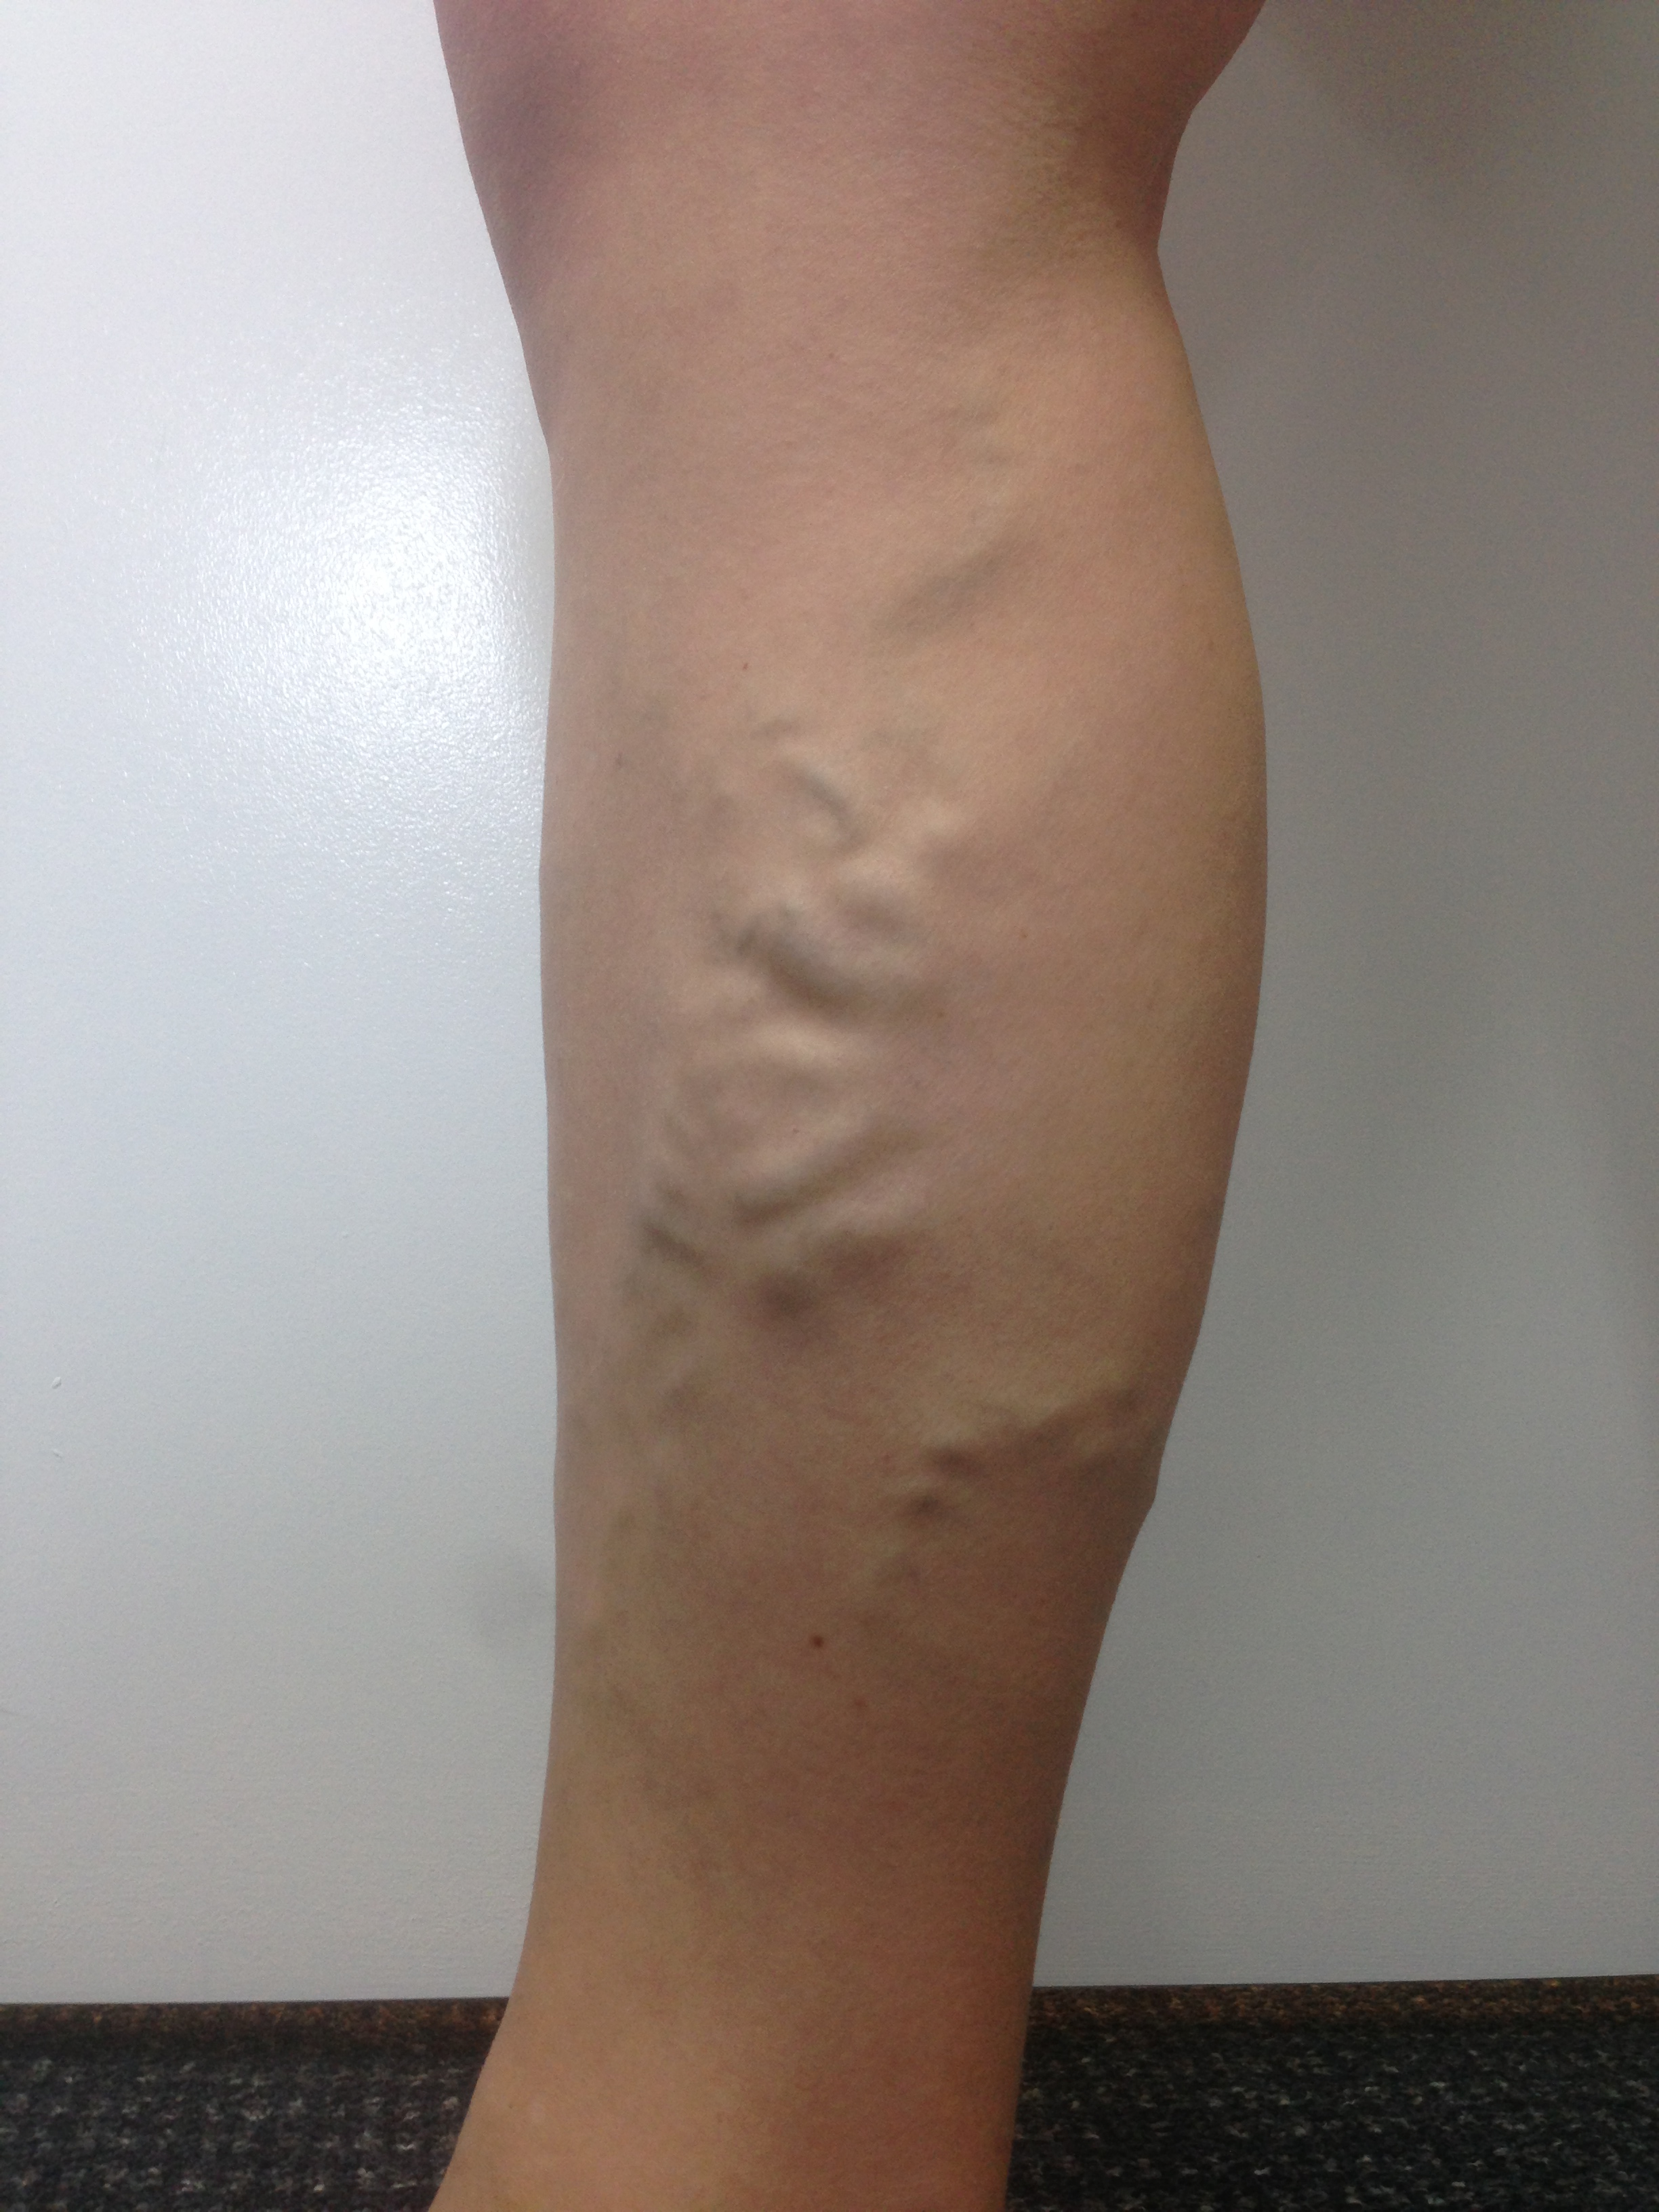 Patient presenting with Varicose Veins - Female, 28 years from Ipswich.